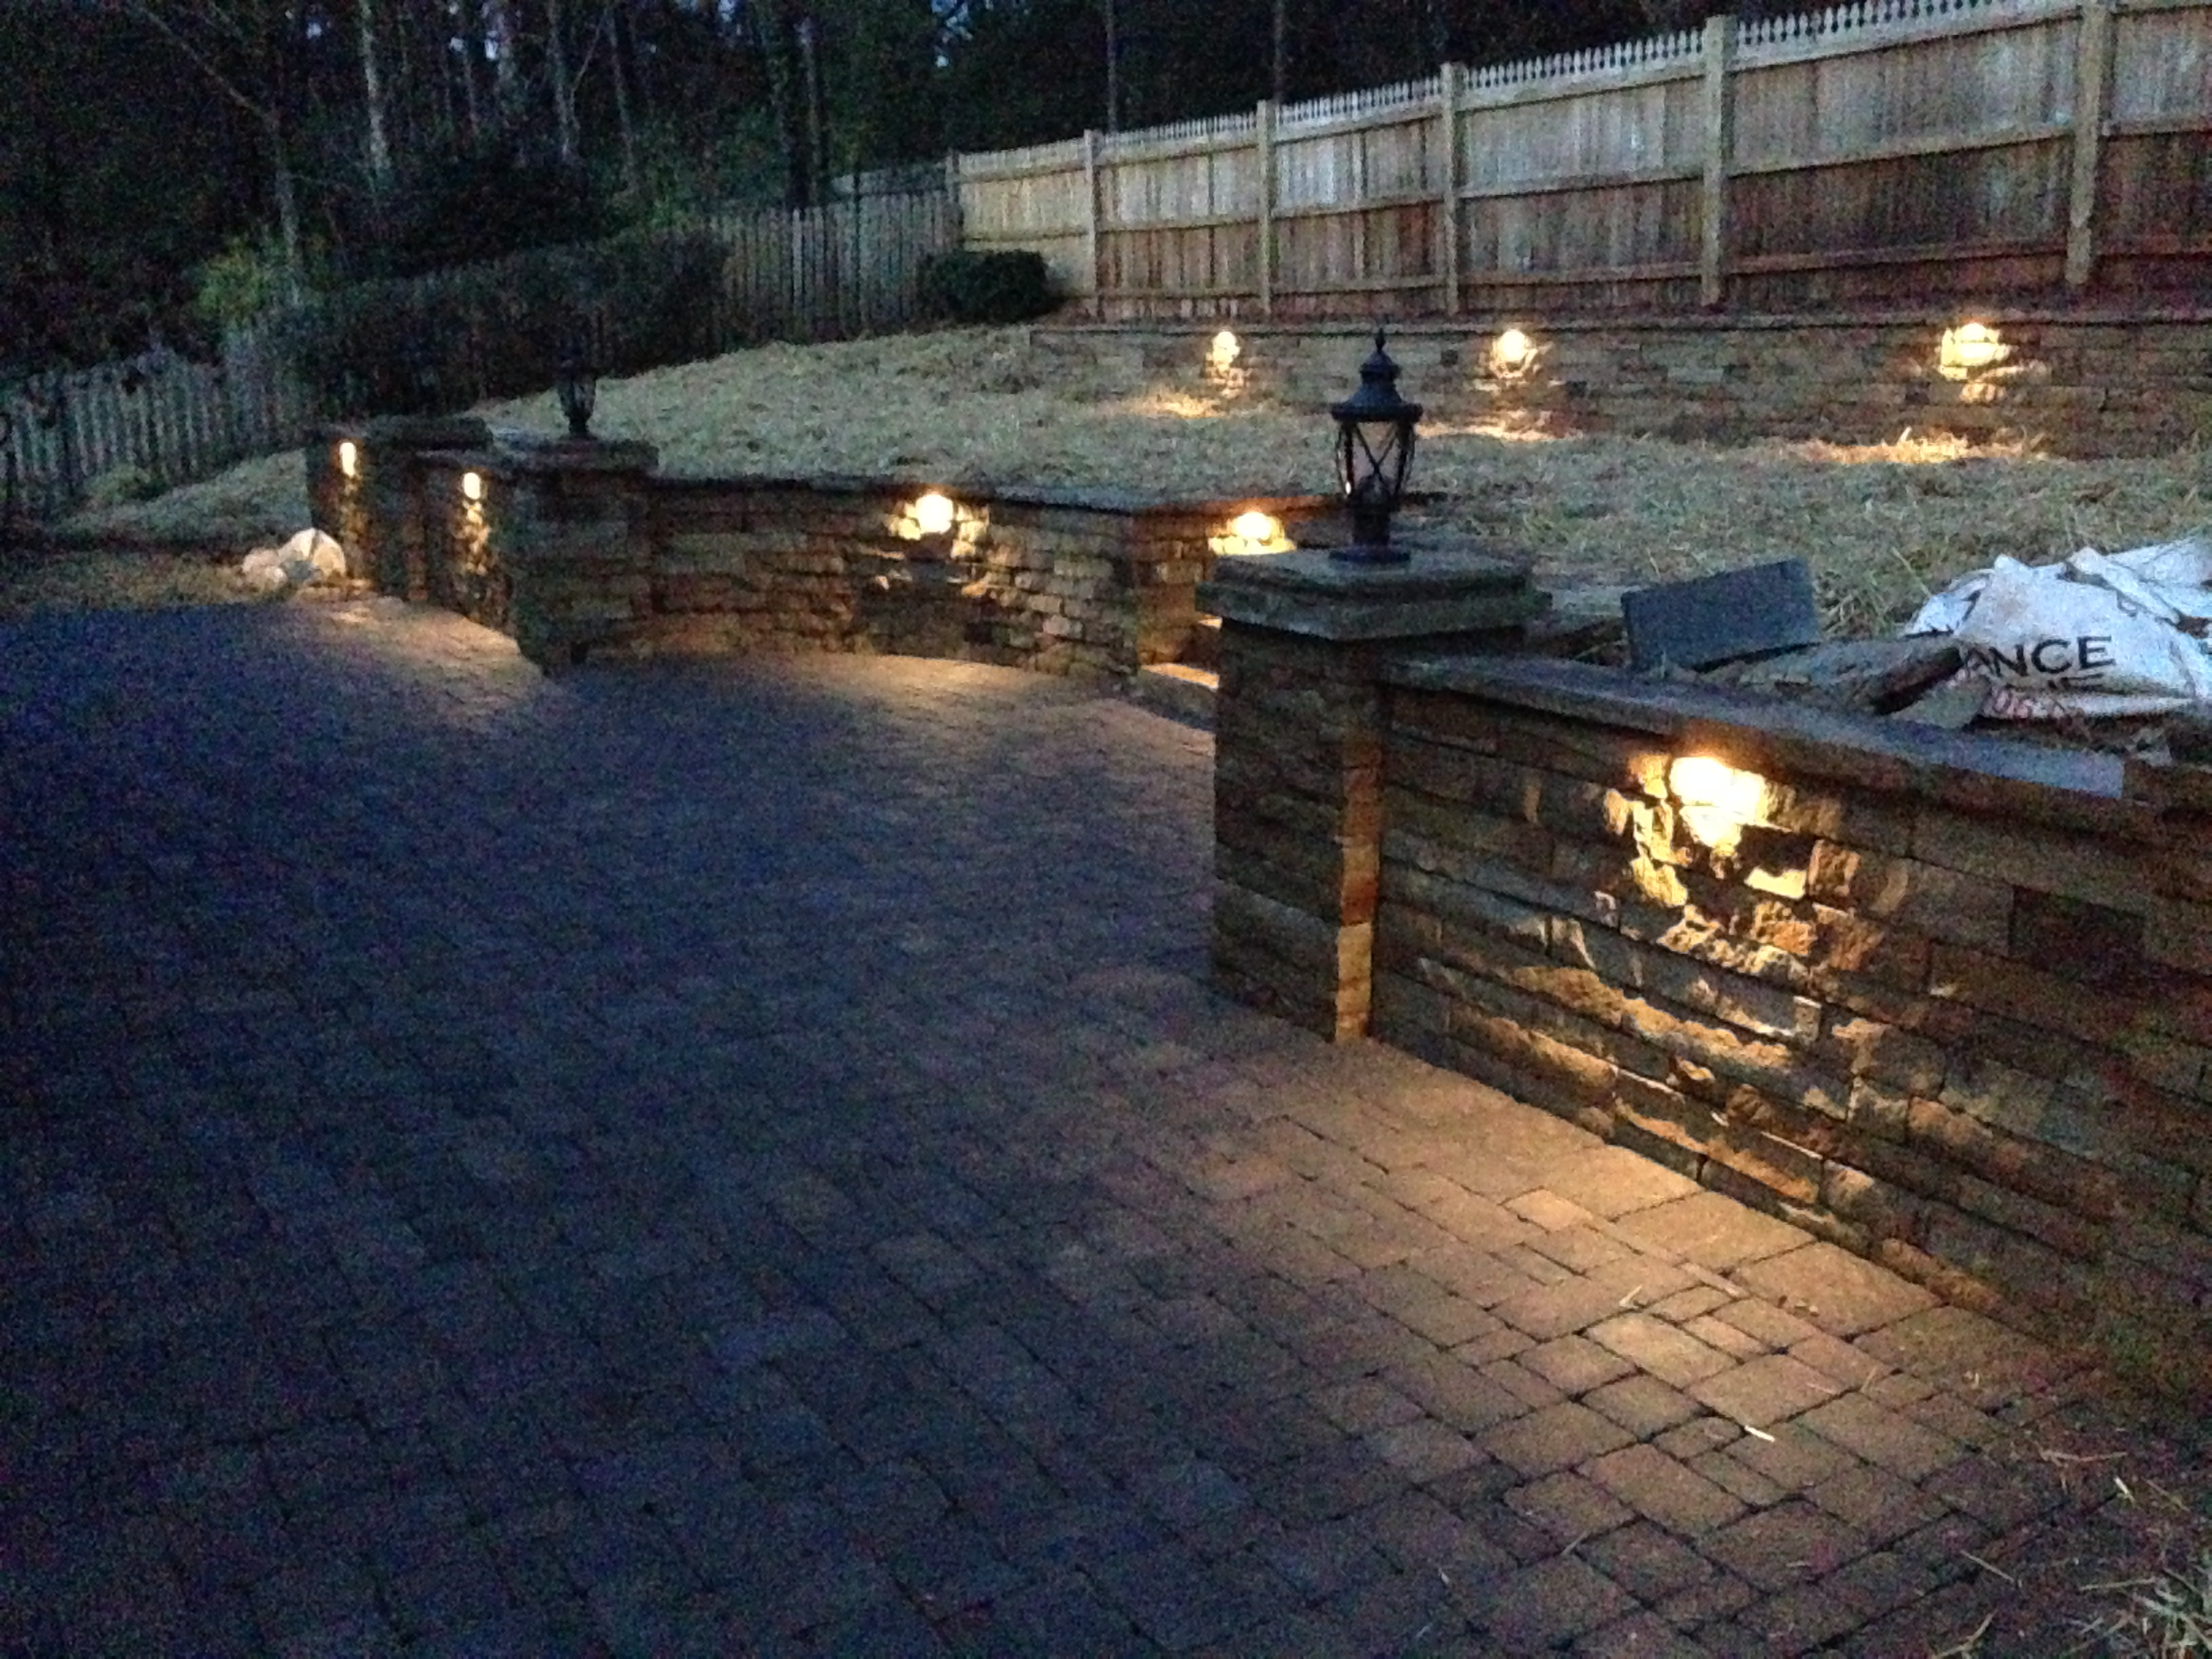 An all cobble patio is ringed in by a rough-hewn brick retaining wall.